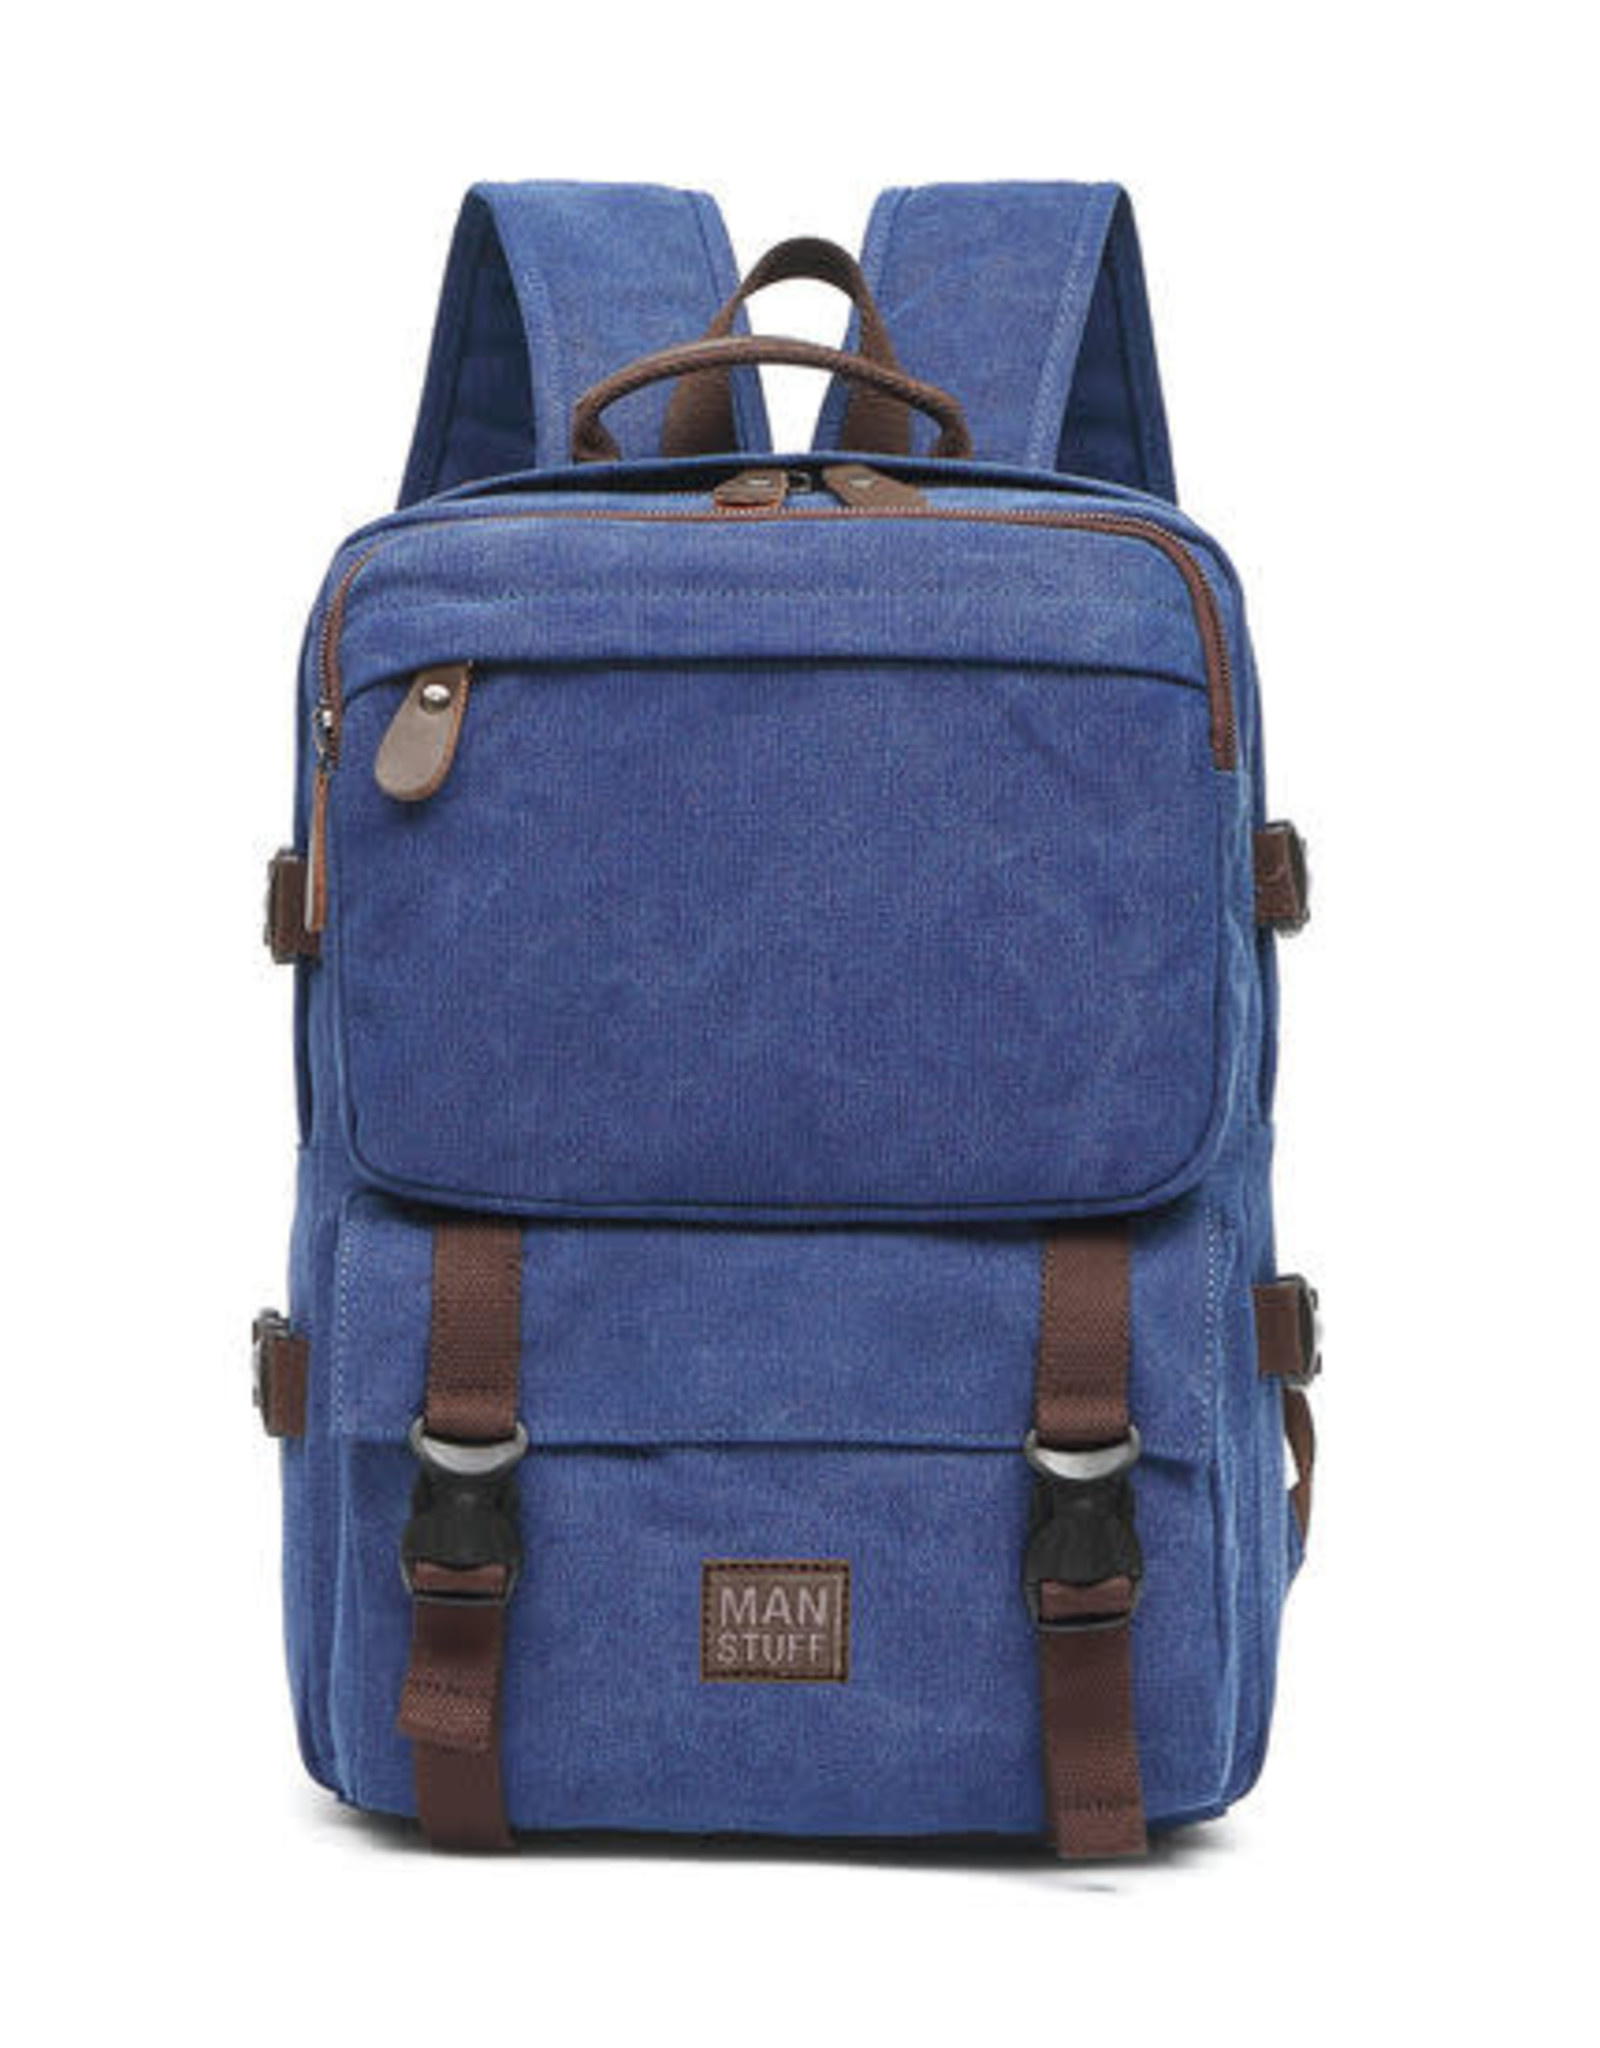 ABOUT FACE ABOUT FACE DARK BLUE CANVAS BACKPACK